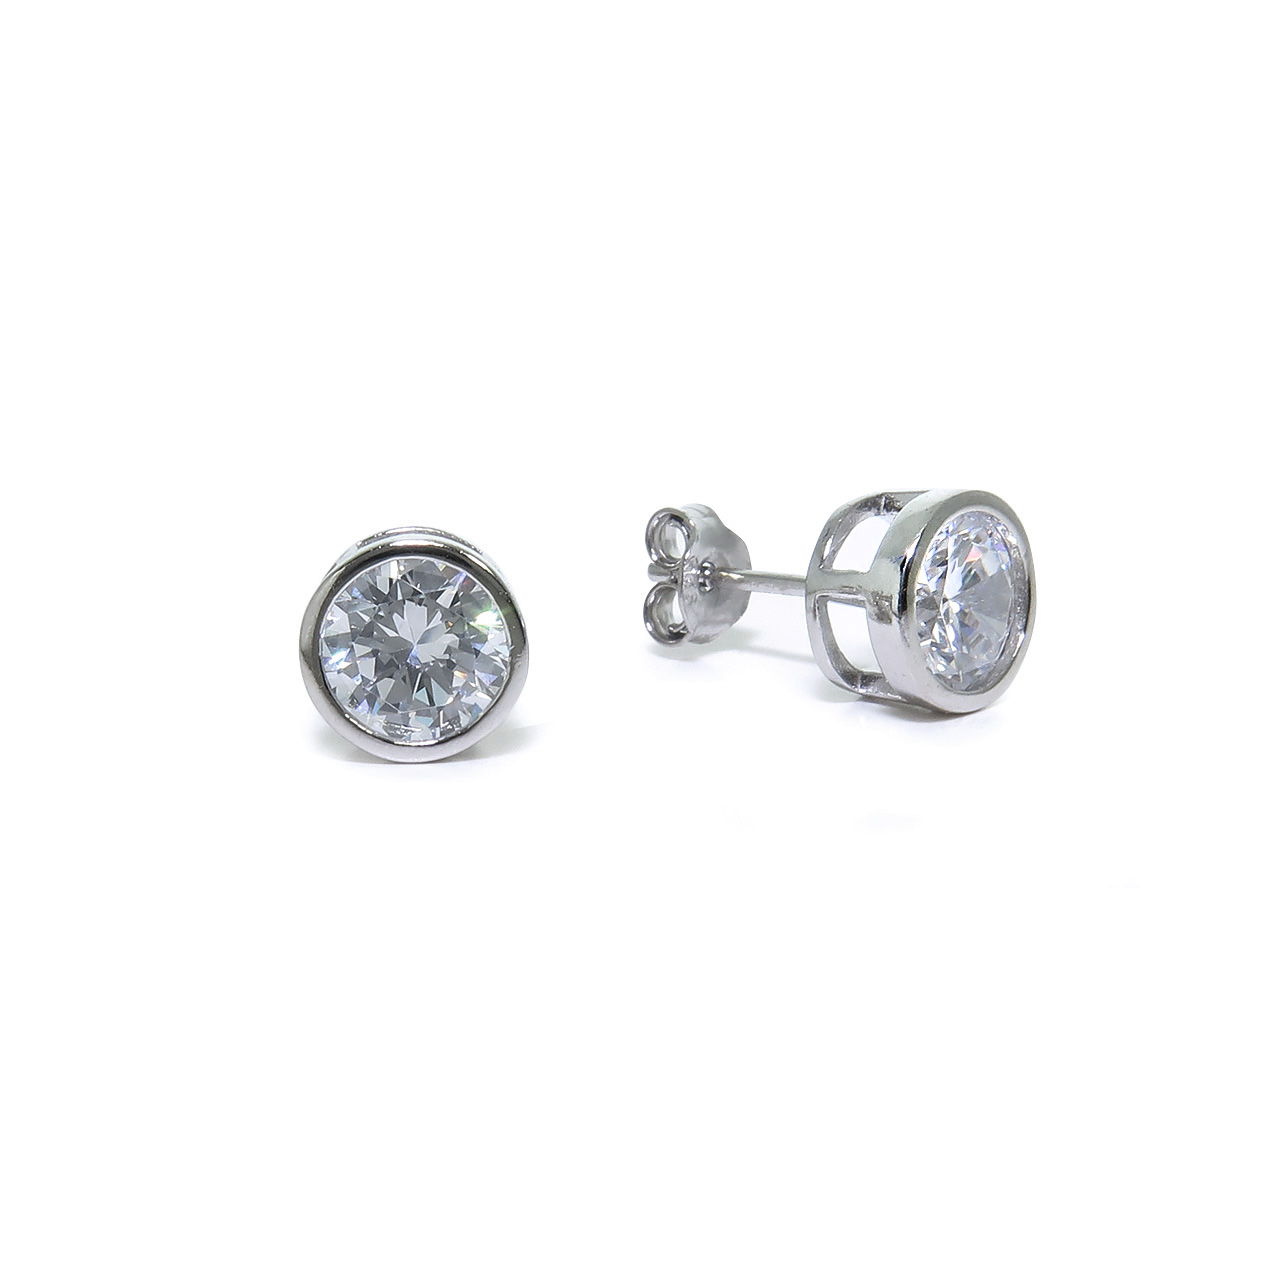 Sterling Silver Round CZ Bezel Stud Earrings  7mm 74f49b2dff34